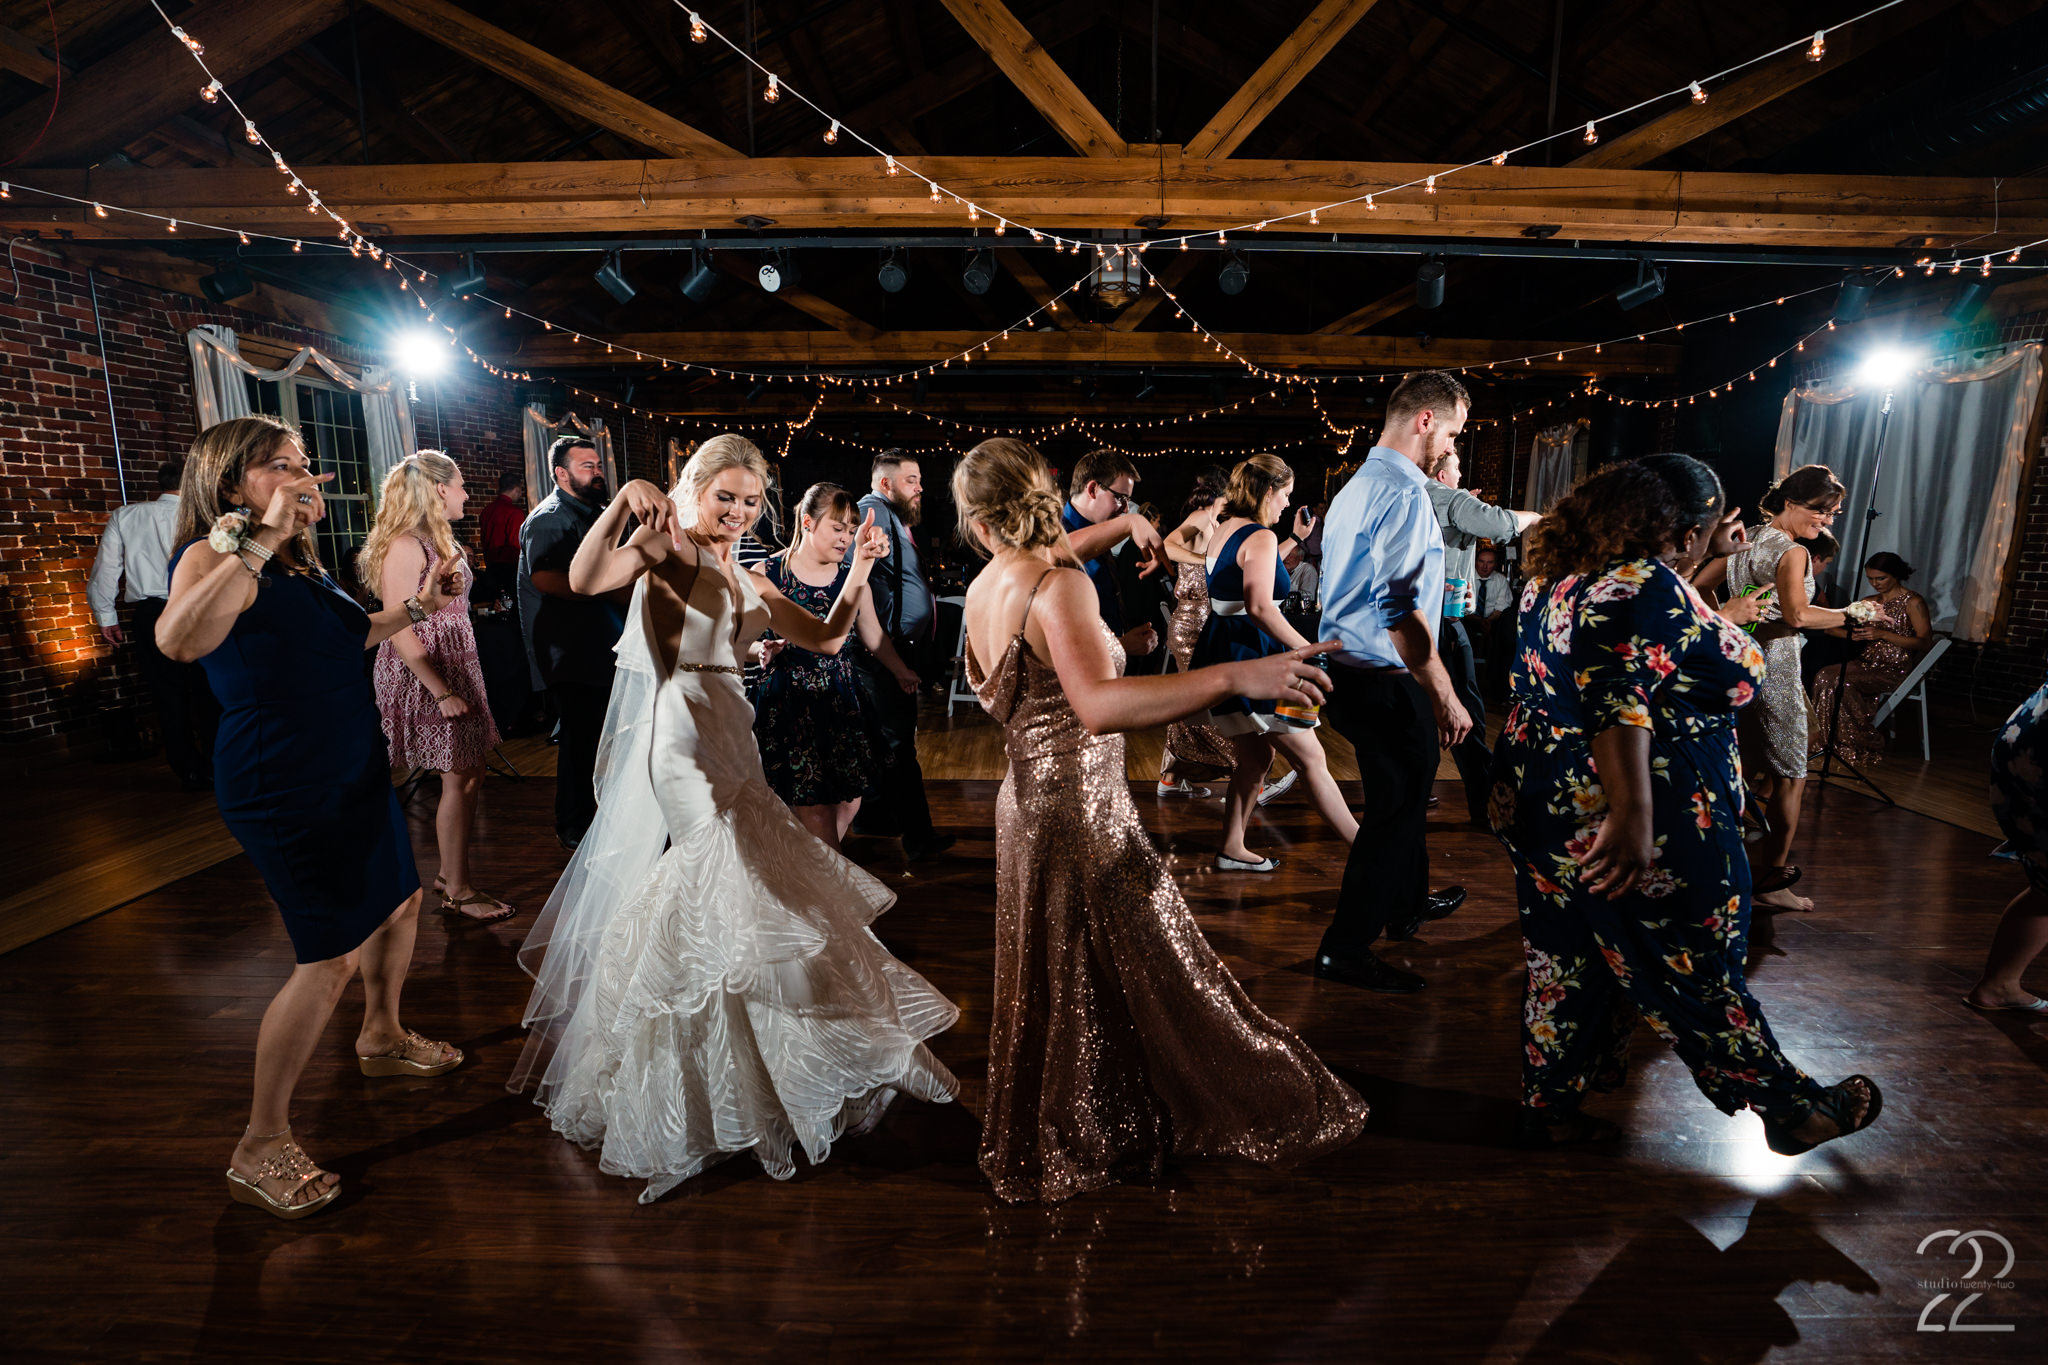 Top of the Market in Dayton, Ohio has the perfect dance floors for you and your guests to bust a move.